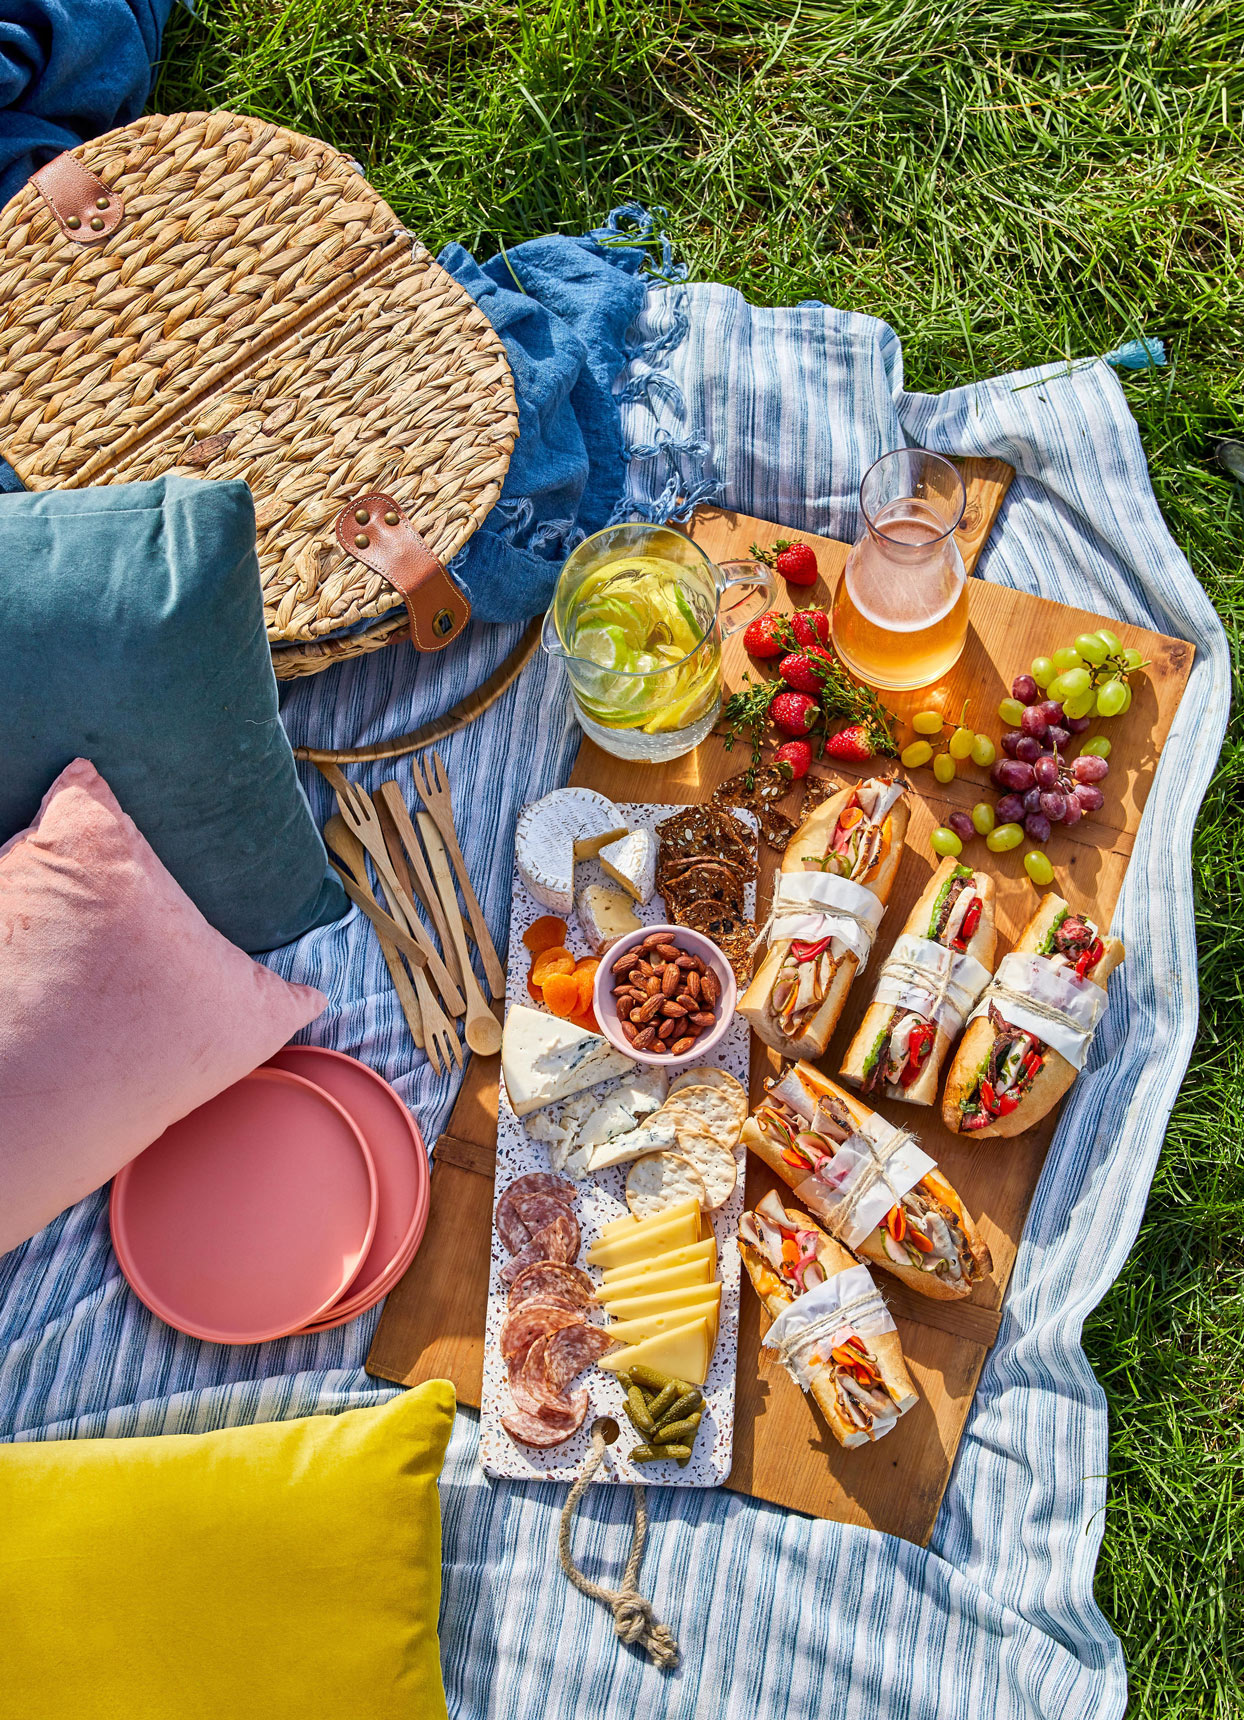 picnic with sandwiches, charcuterie, and pink plates